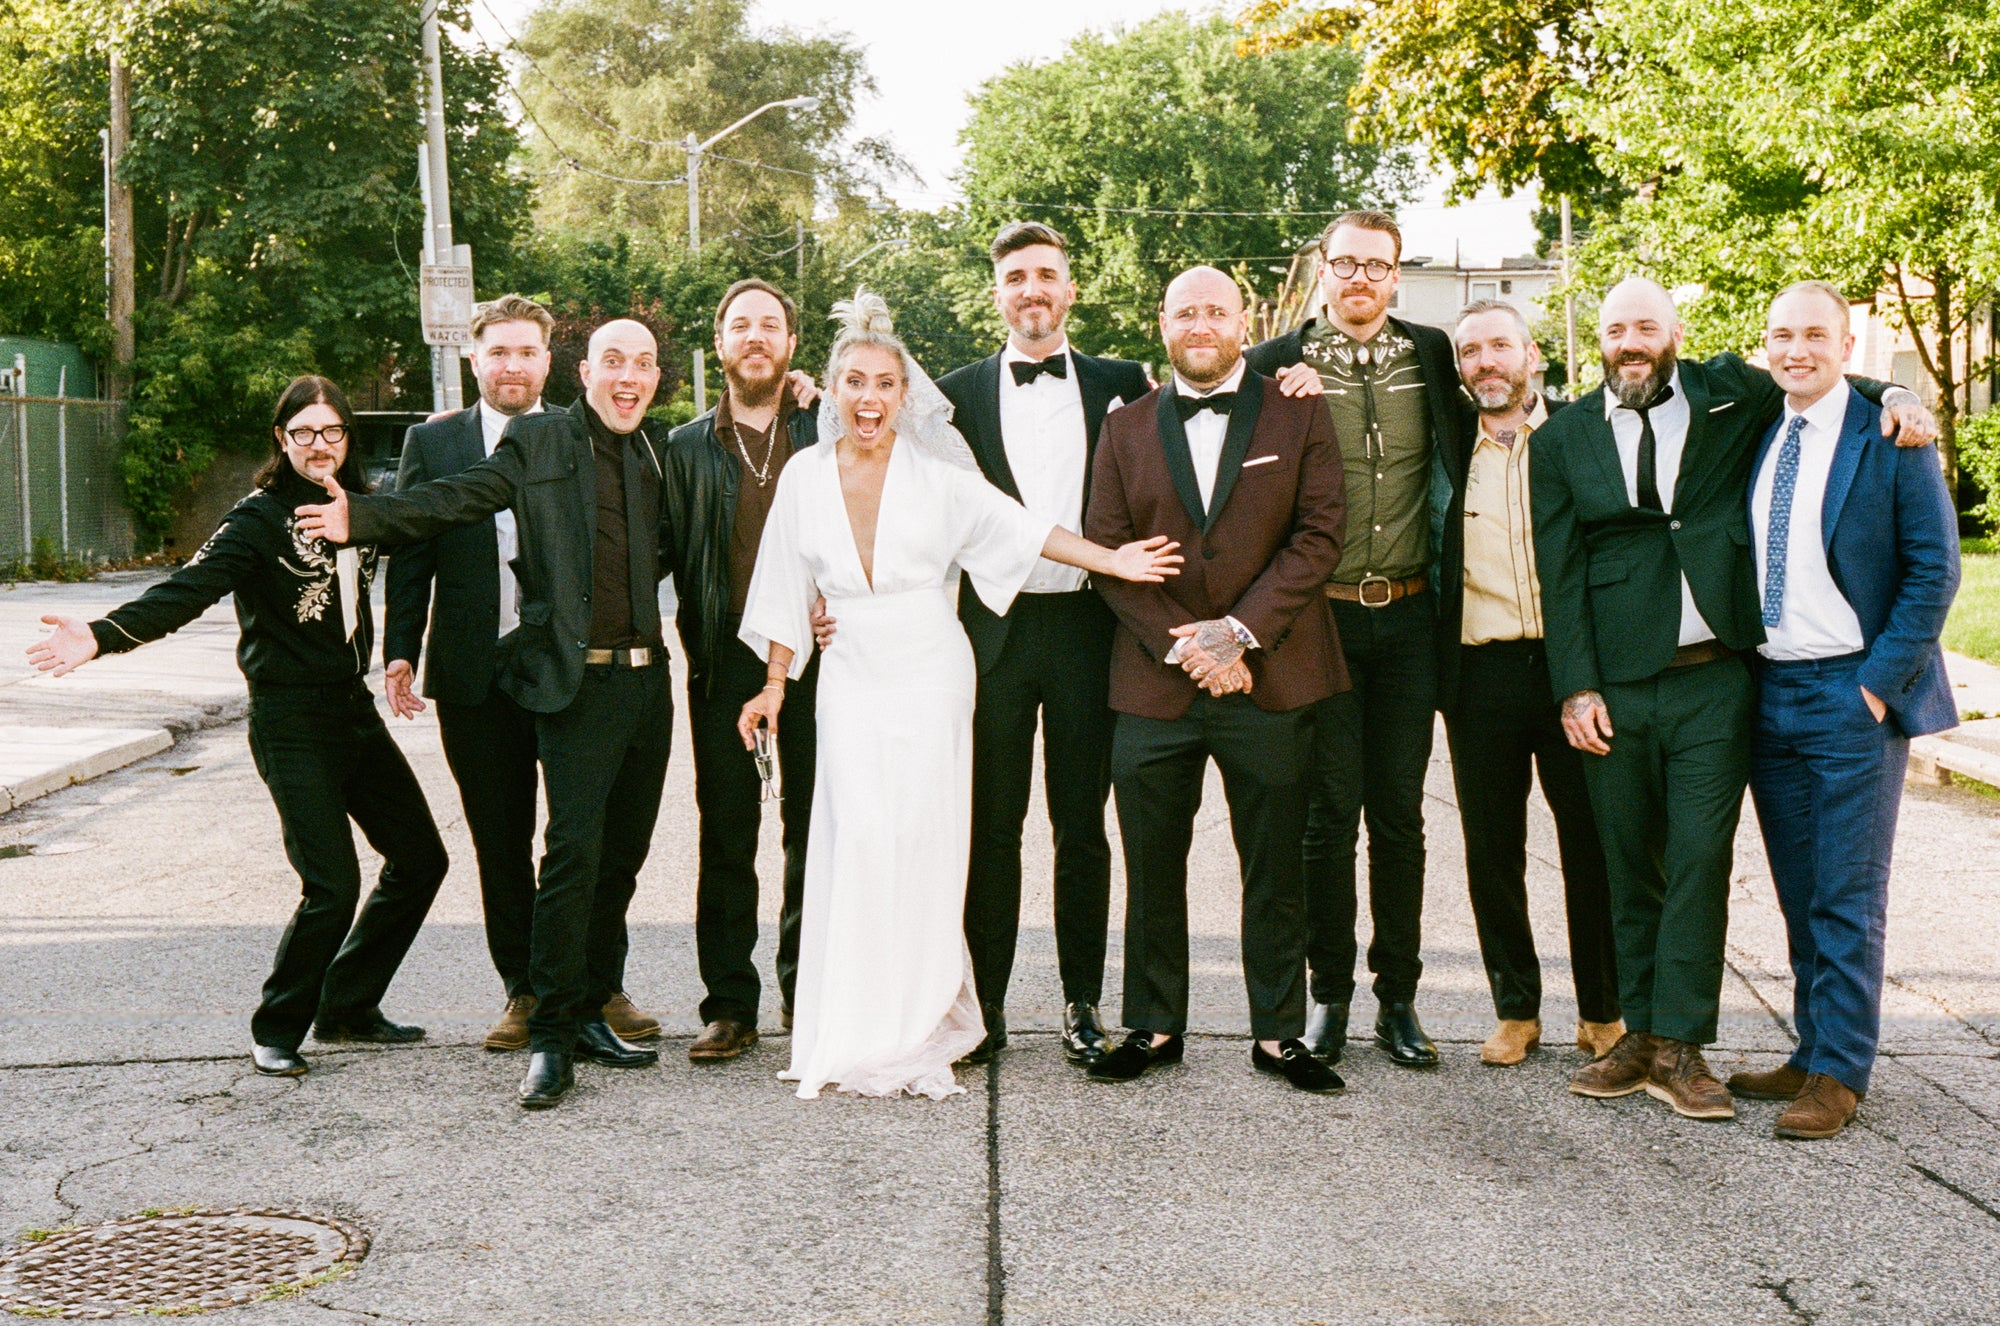 The Manual: A grooms guide to planning a wedding